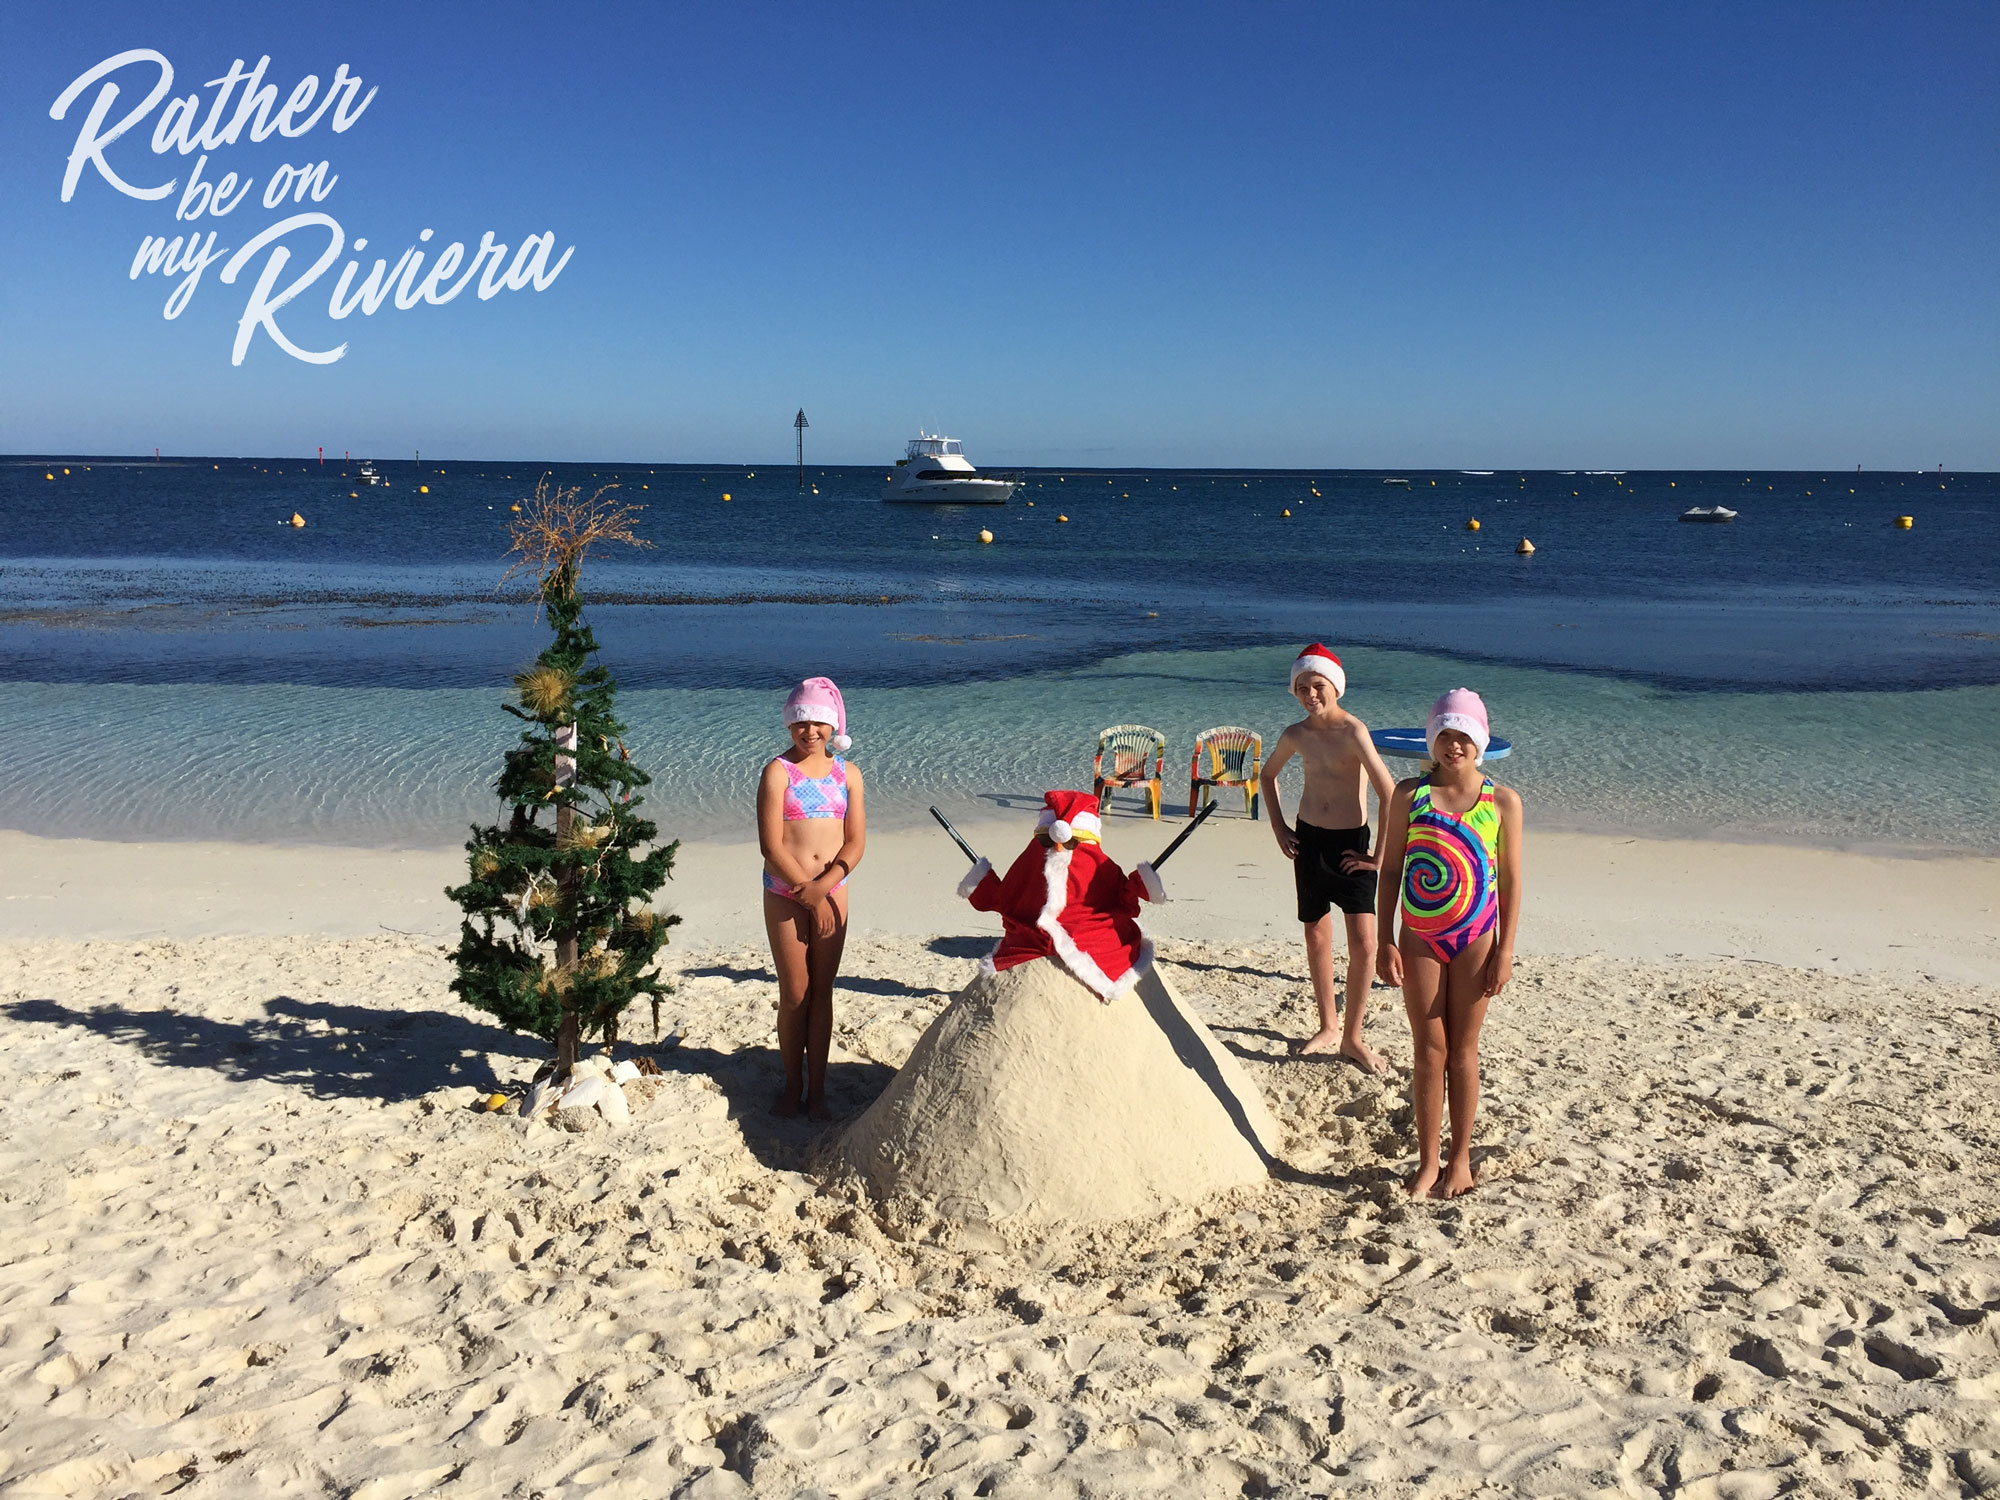 Riviera and Belize Photo and Video Competition This month's winner